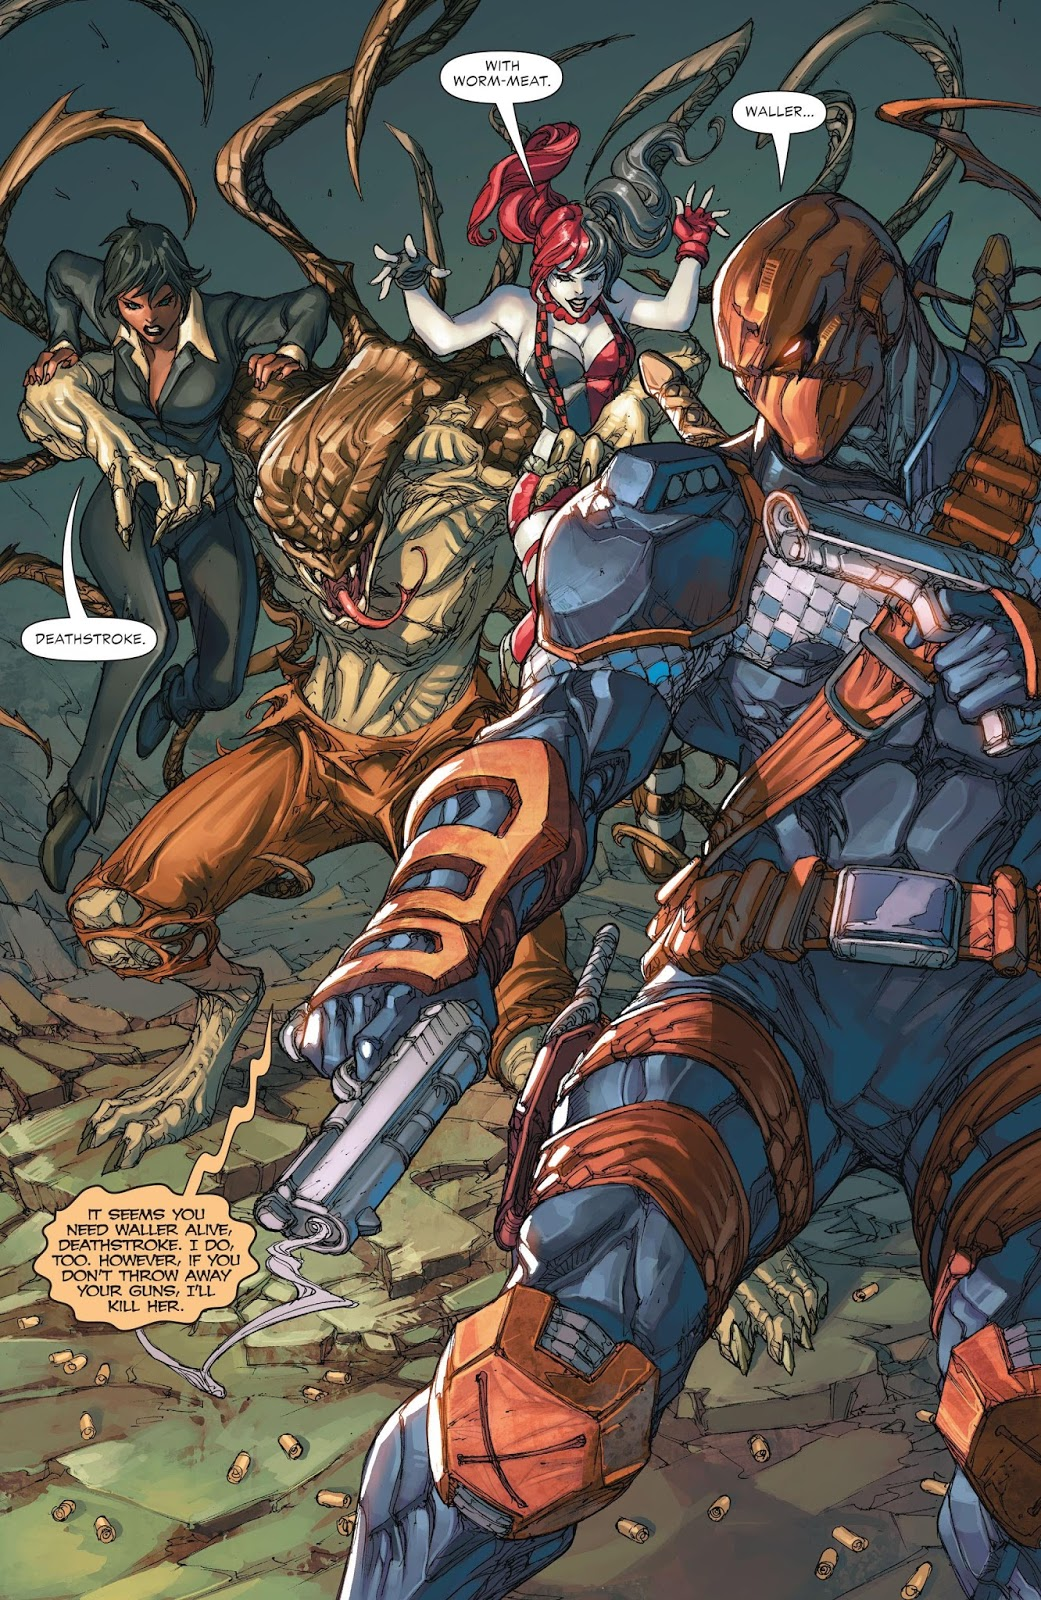 Weird Science DC Comics: Deathstroke #13 Review